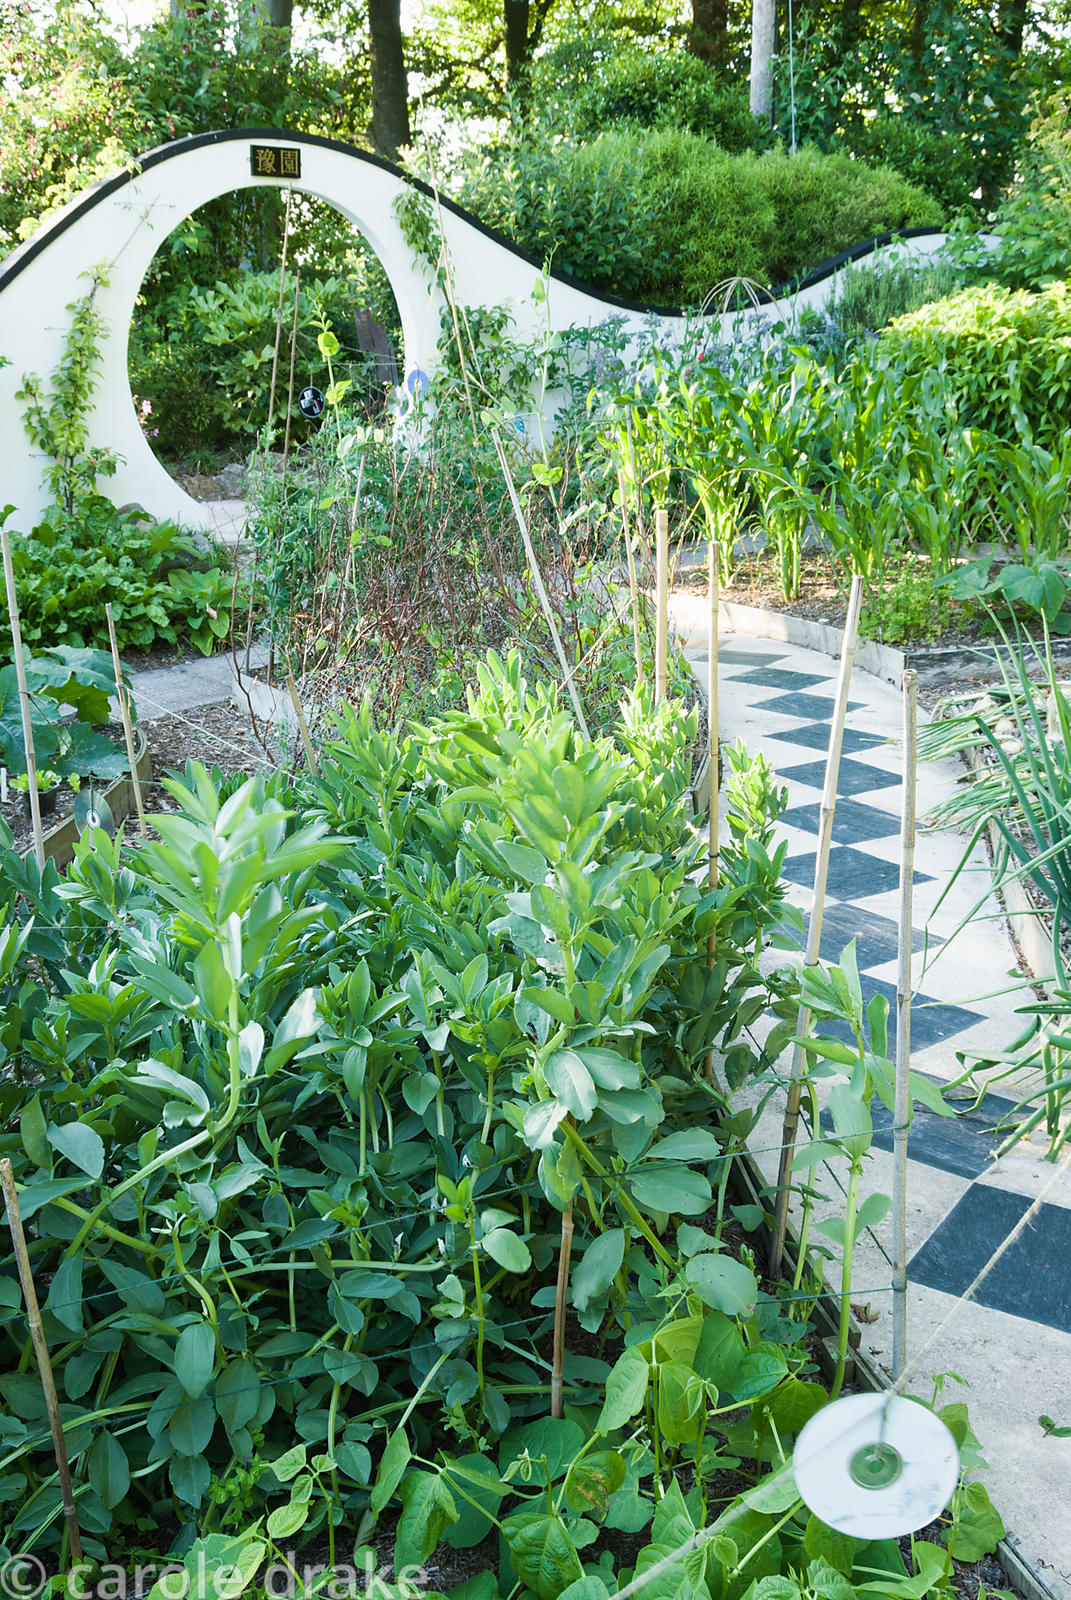 Kitchen garden features raised beds curved to fit the pathways, with curving wall pierced by moon gate beyond. Beggars Knoll,...